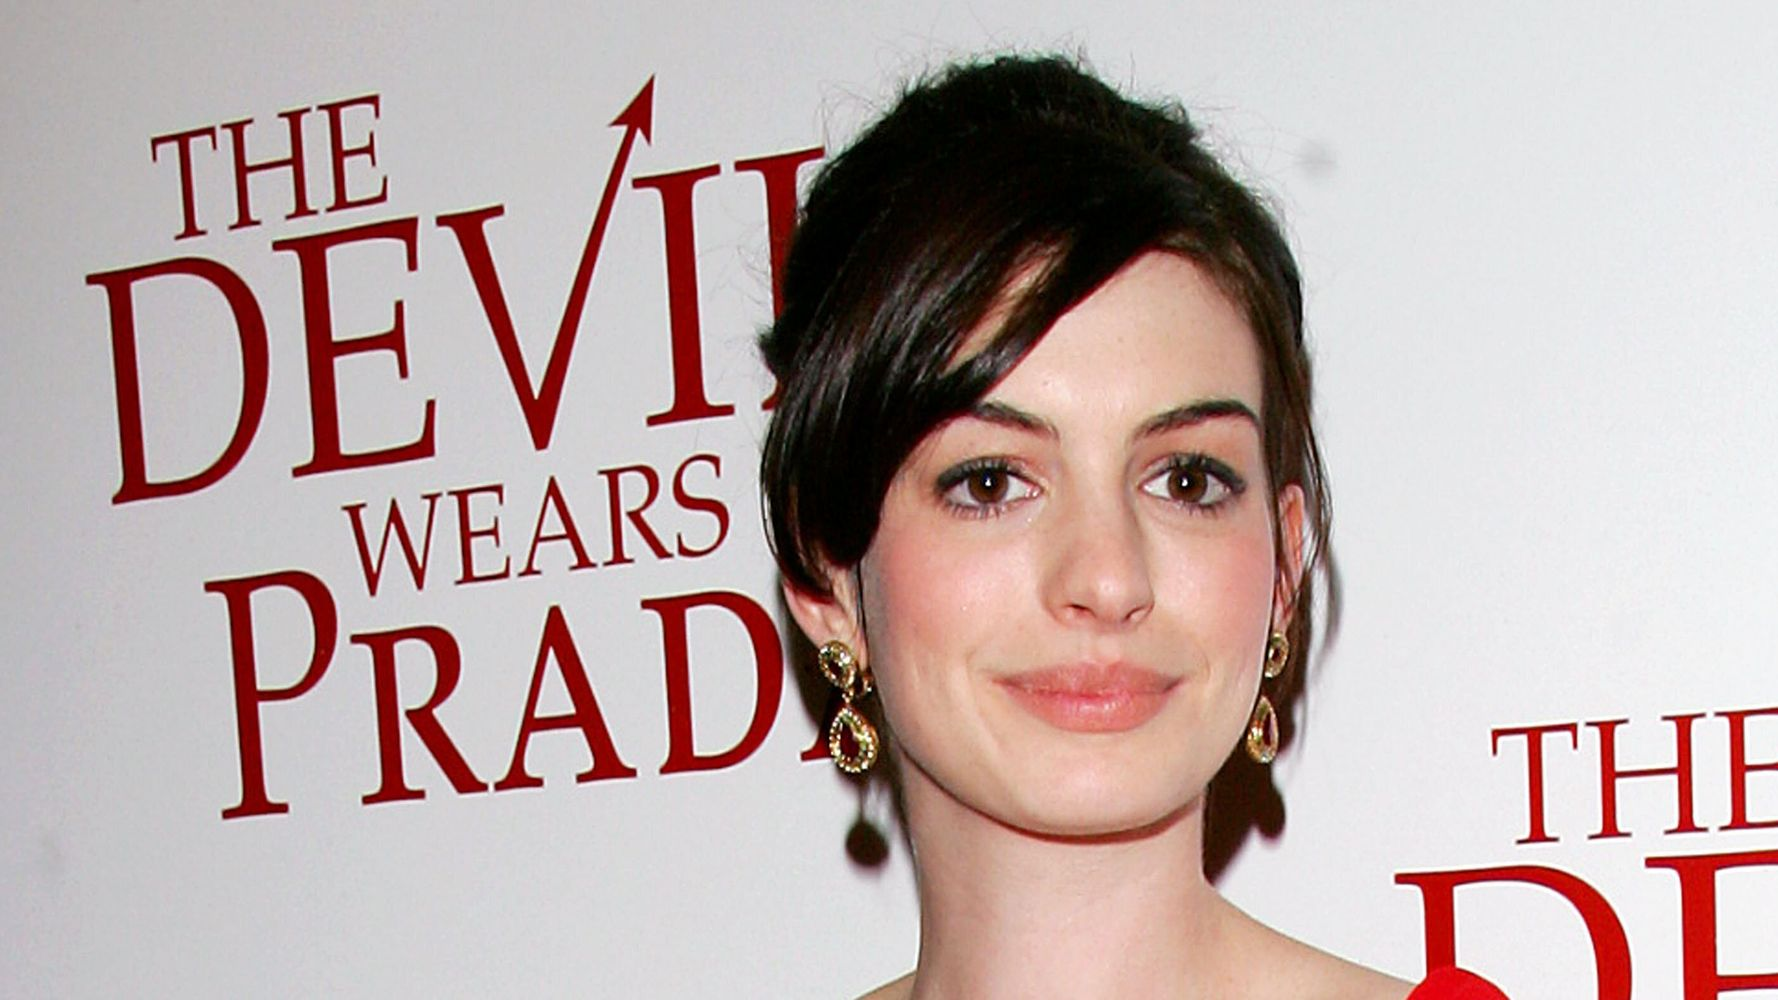 'The Devil Wears Prada' Director Reveals Who Turned Down Anne Hathaway's Role 3 Times